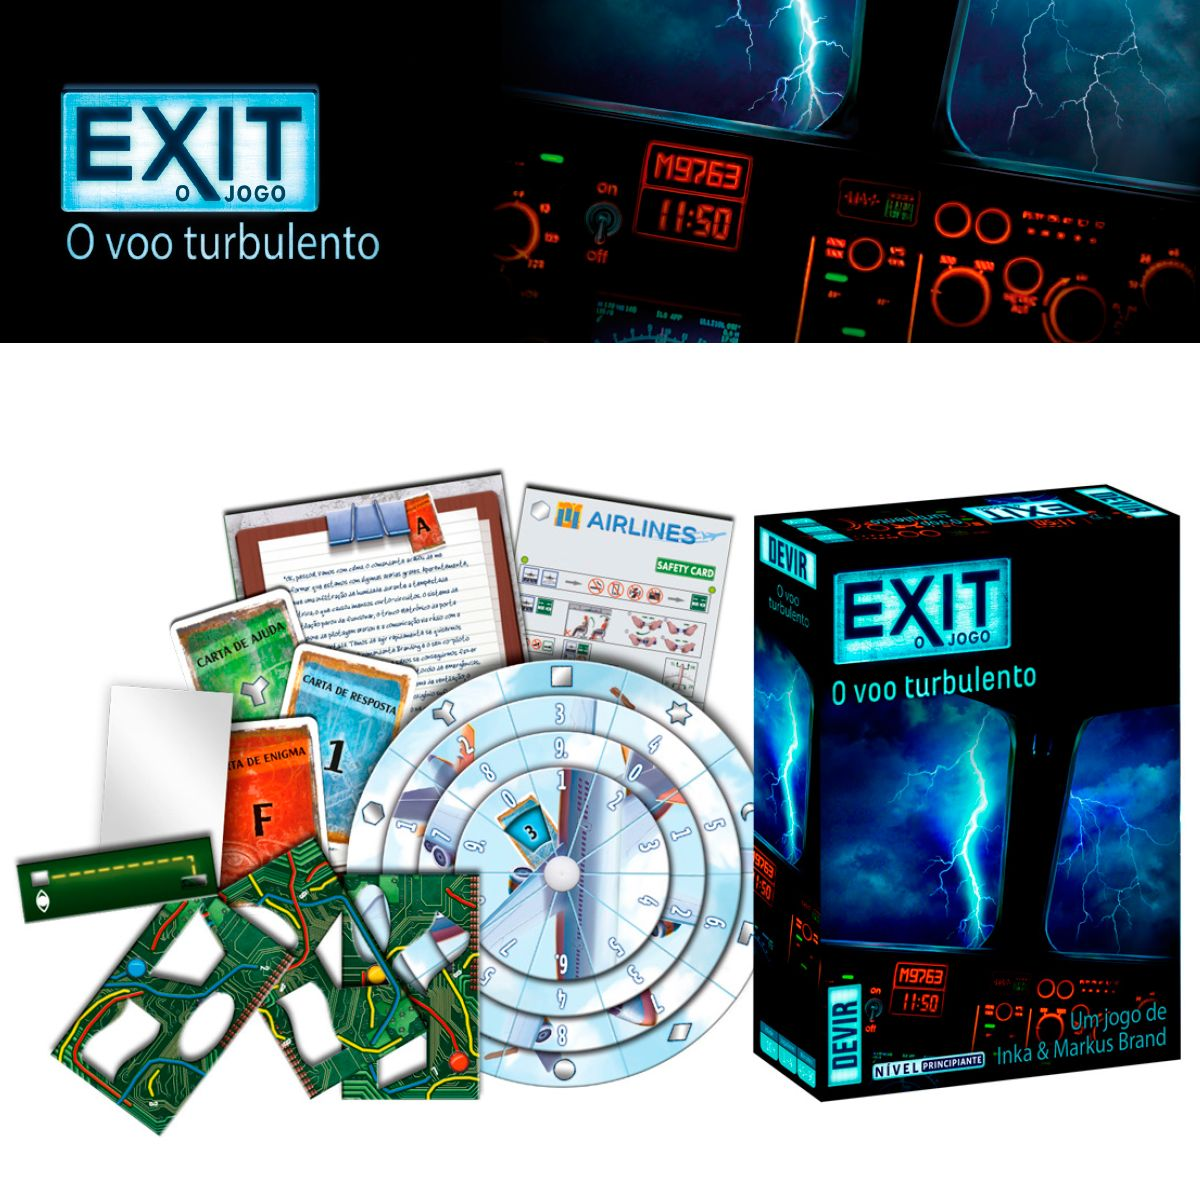 Exit O Voo Turbulento Scape Room